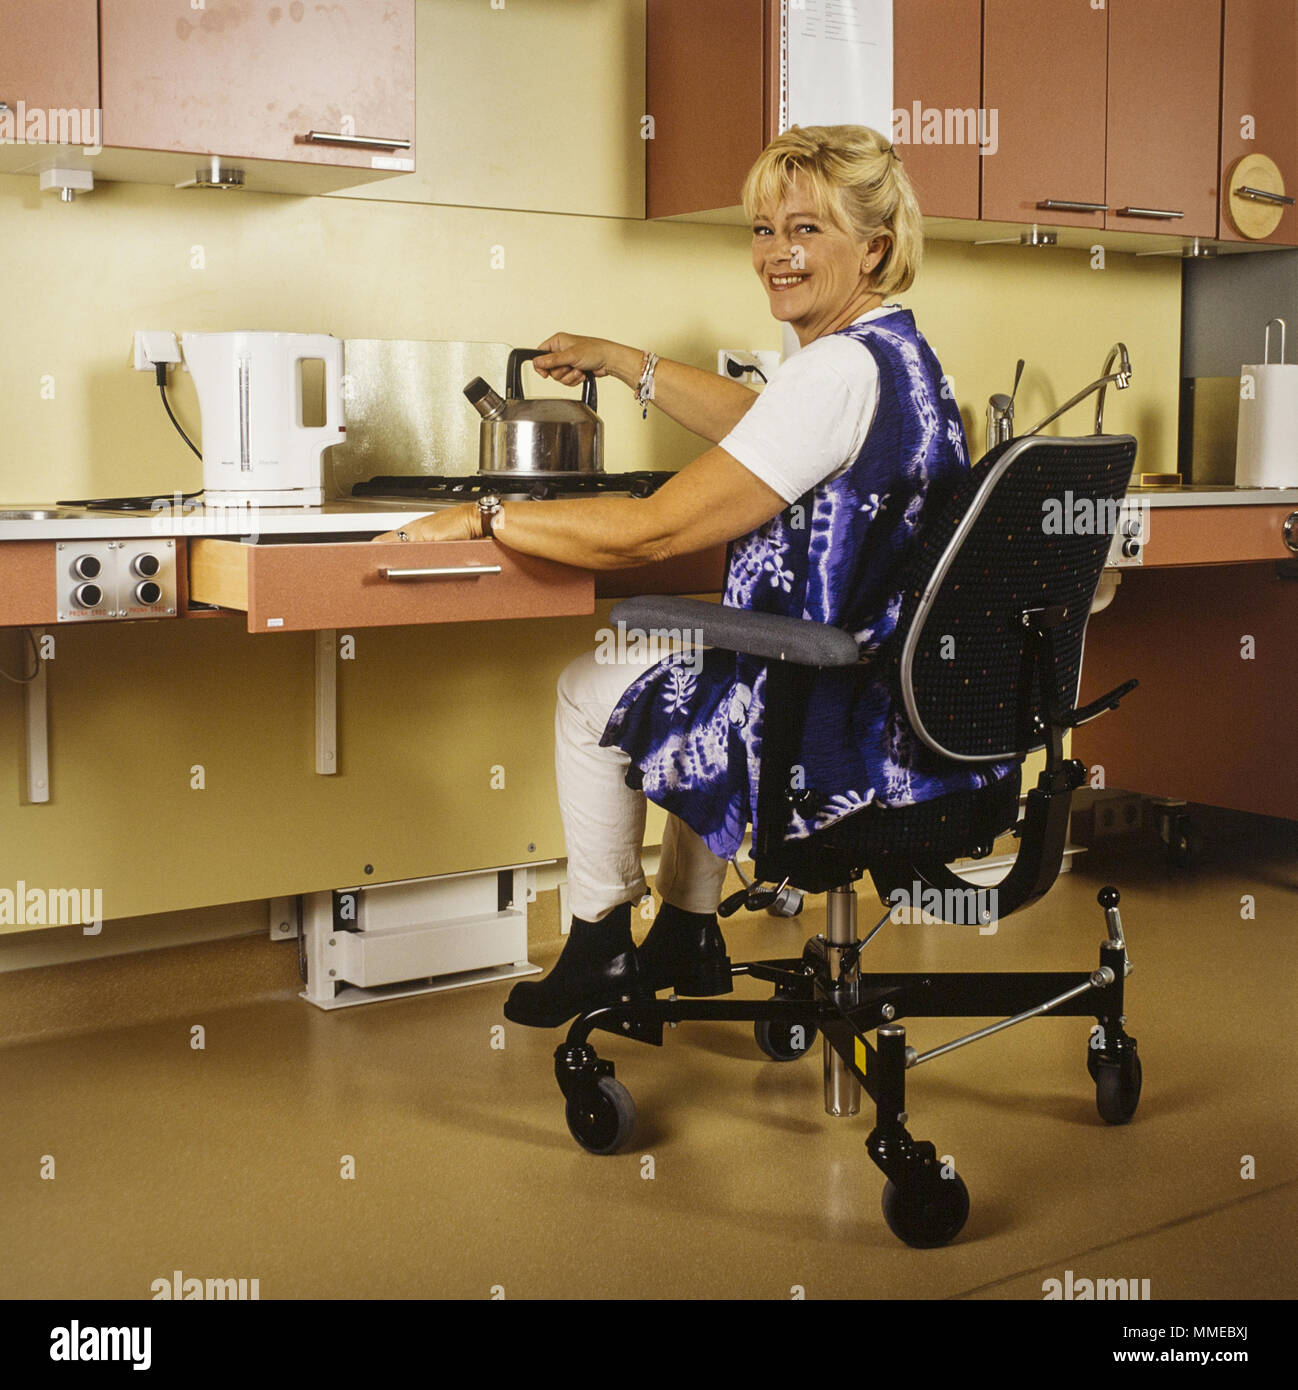 Handicapped woman in handicap kitchen - accessible kitchen for ...